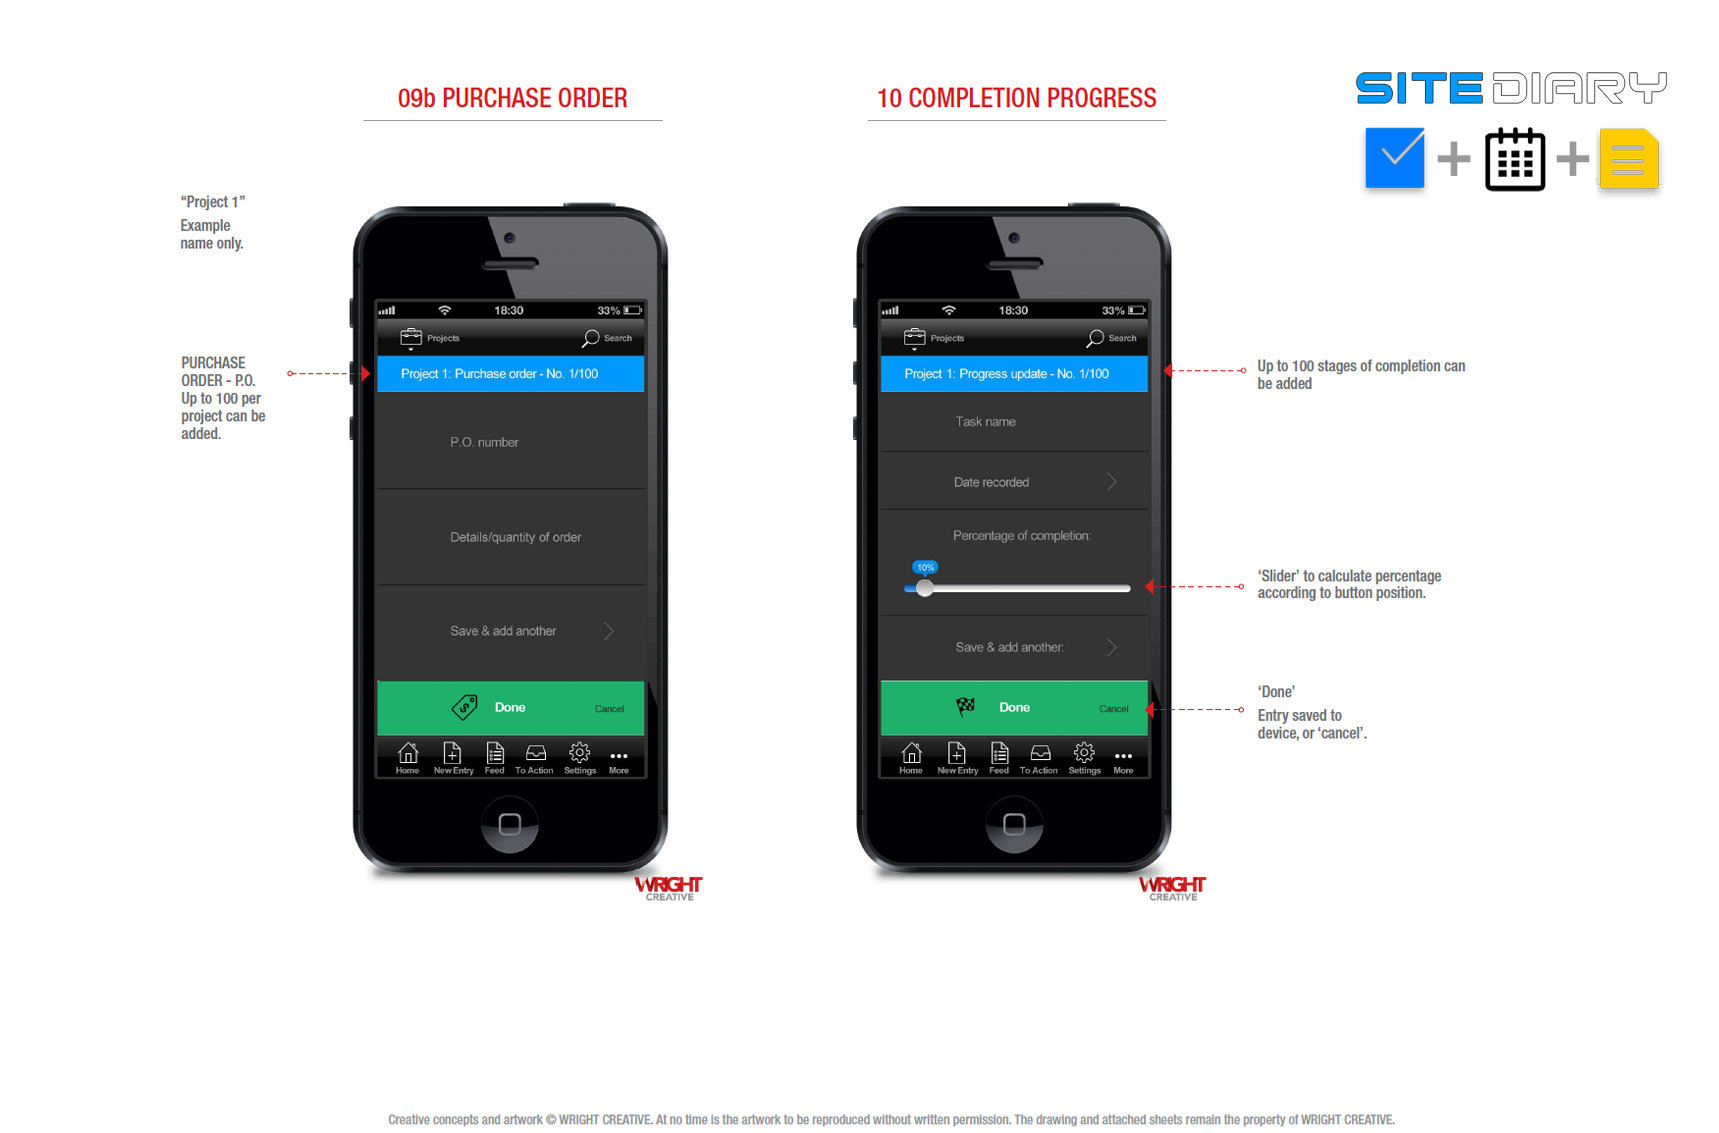 Sitediary Mobile App © Stephen Wright